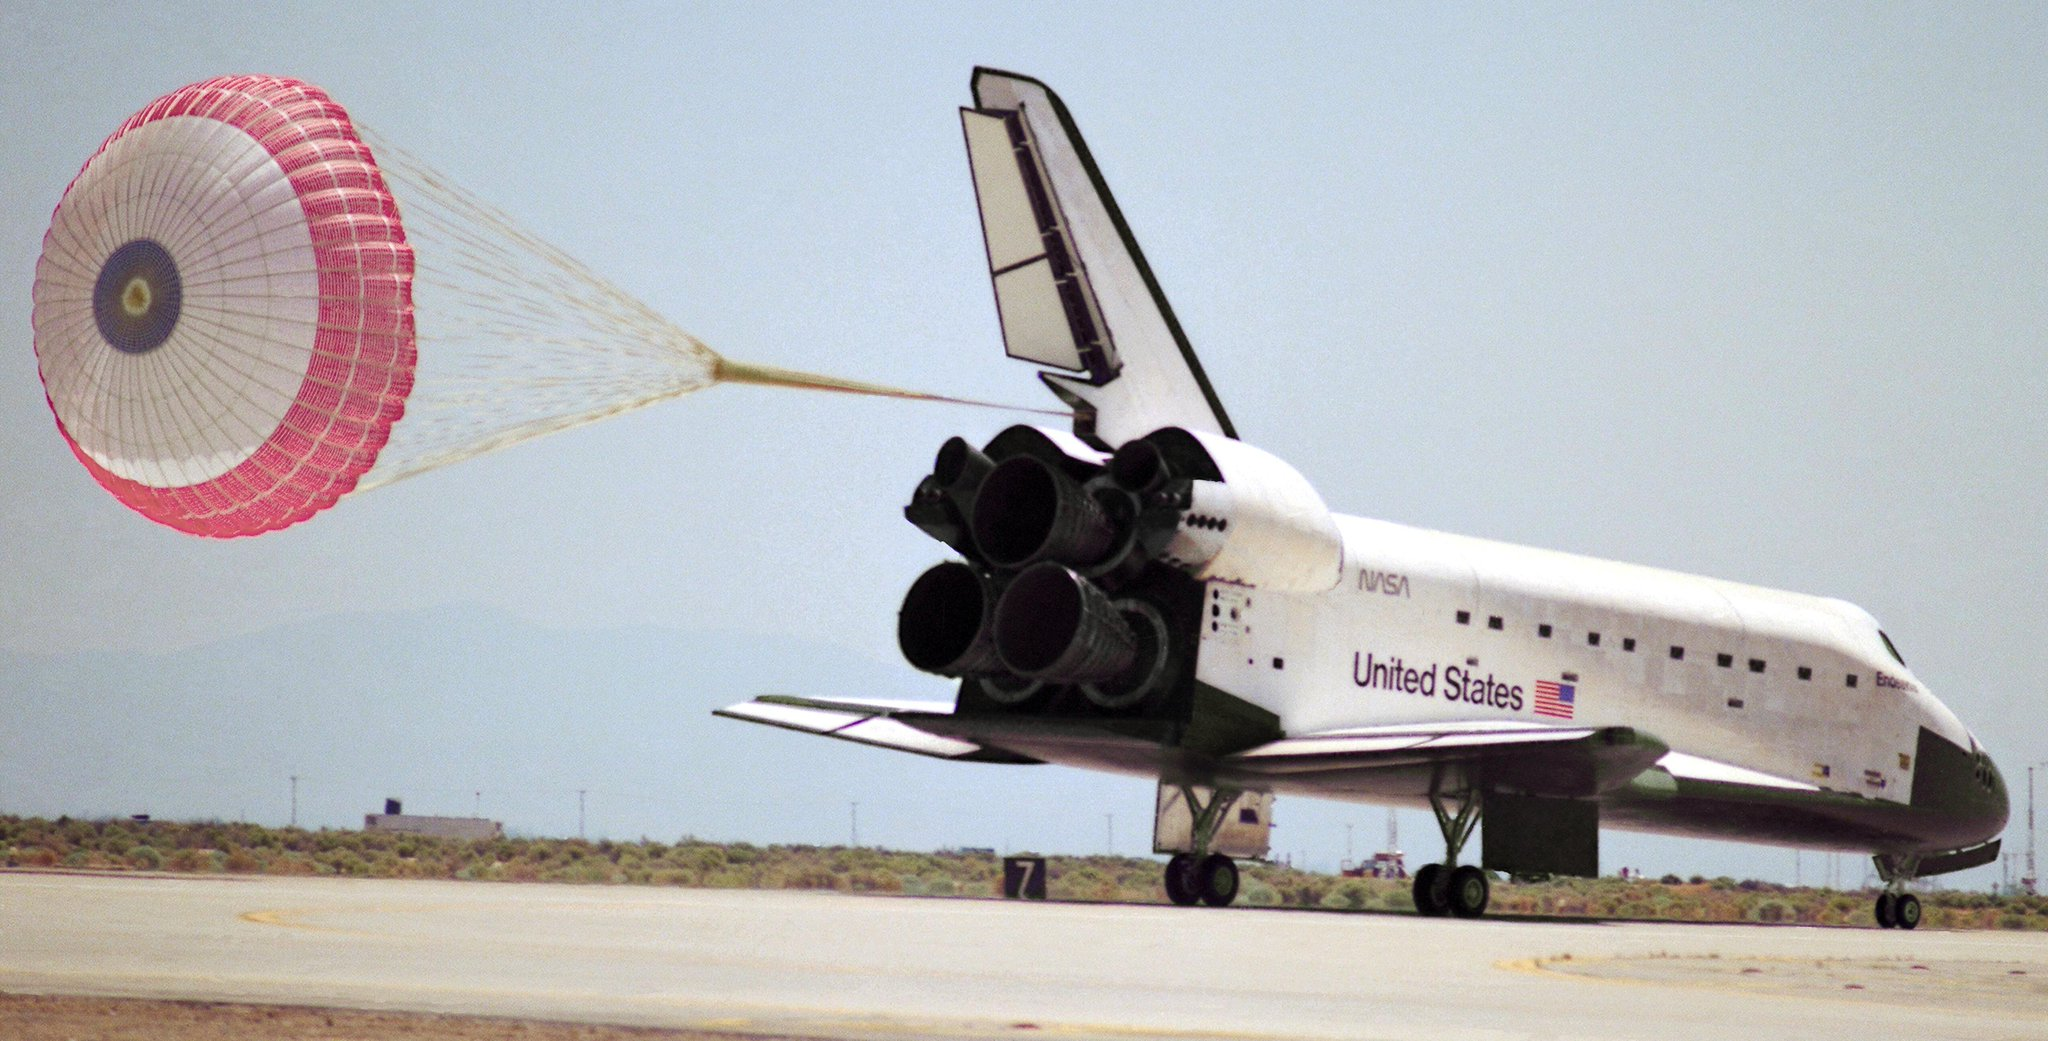 #Now in 1992, STS-49 lands, ending Endeavour's maiden voyage, also the first use of a drag chute   http://t.co/419iCtf3kF